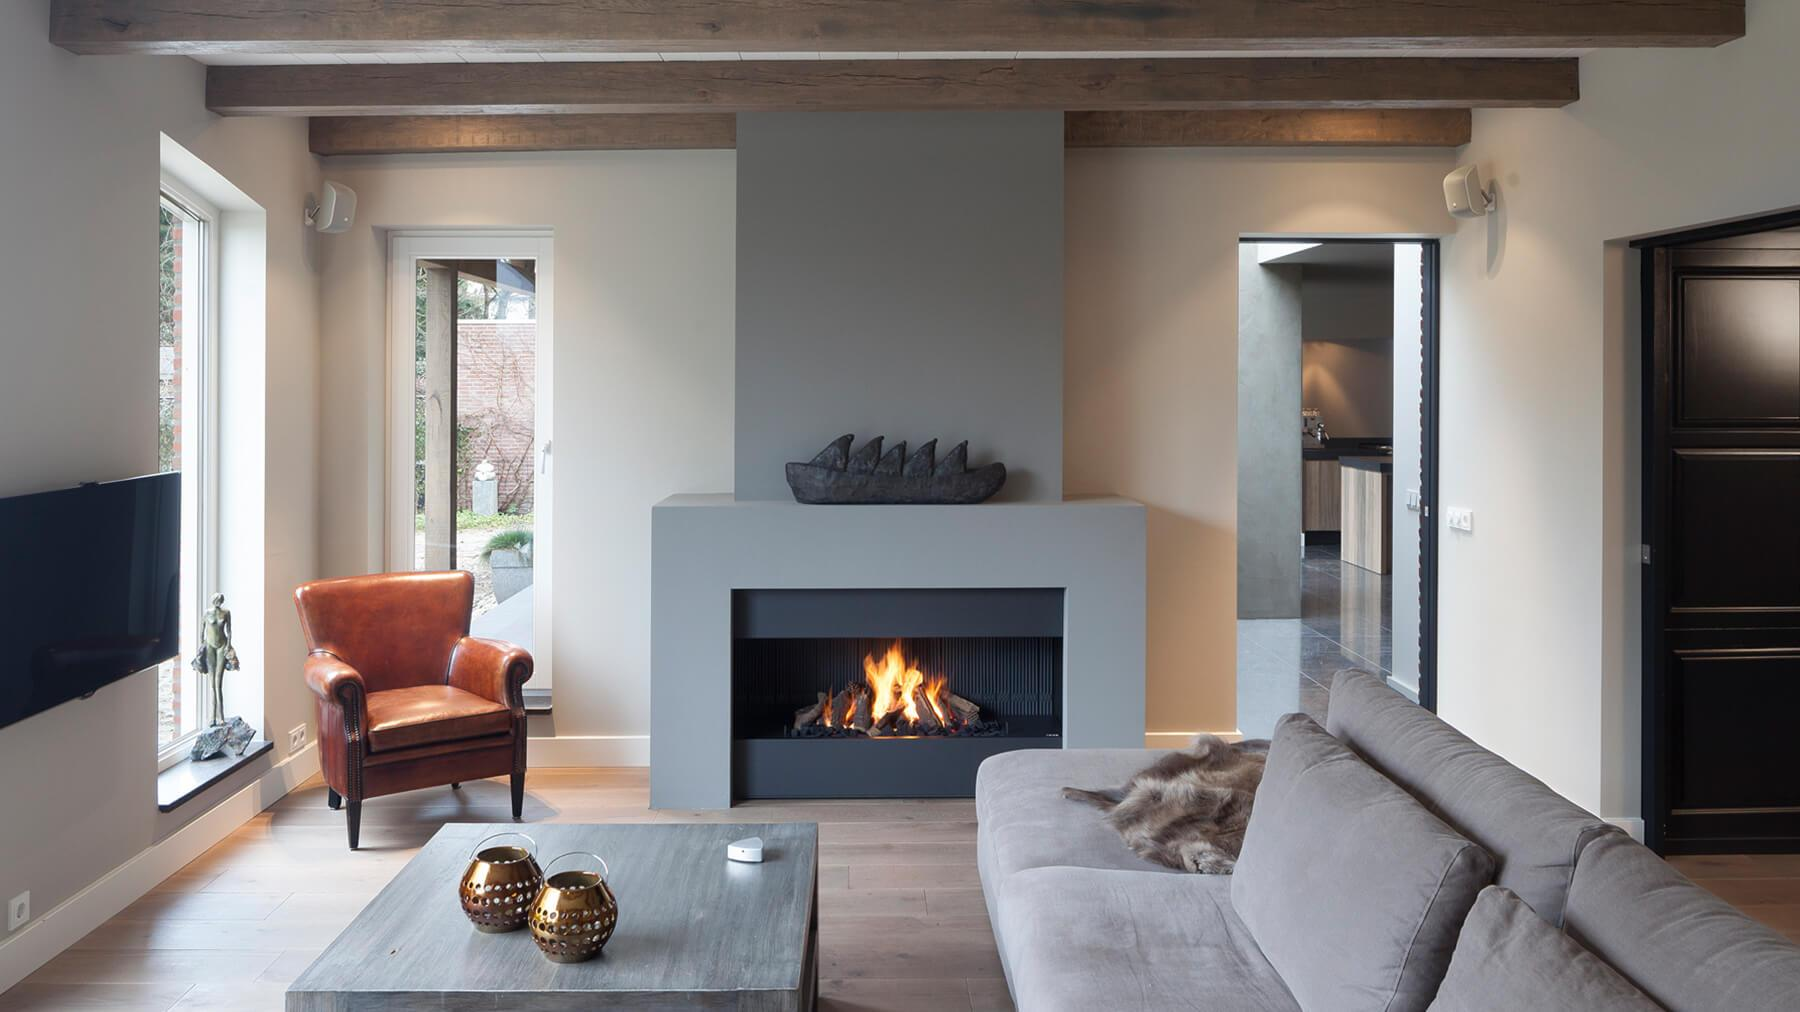 Modus Fireplaces are proud to offer the most stunning Collection of Modern Contemporary fireplaces